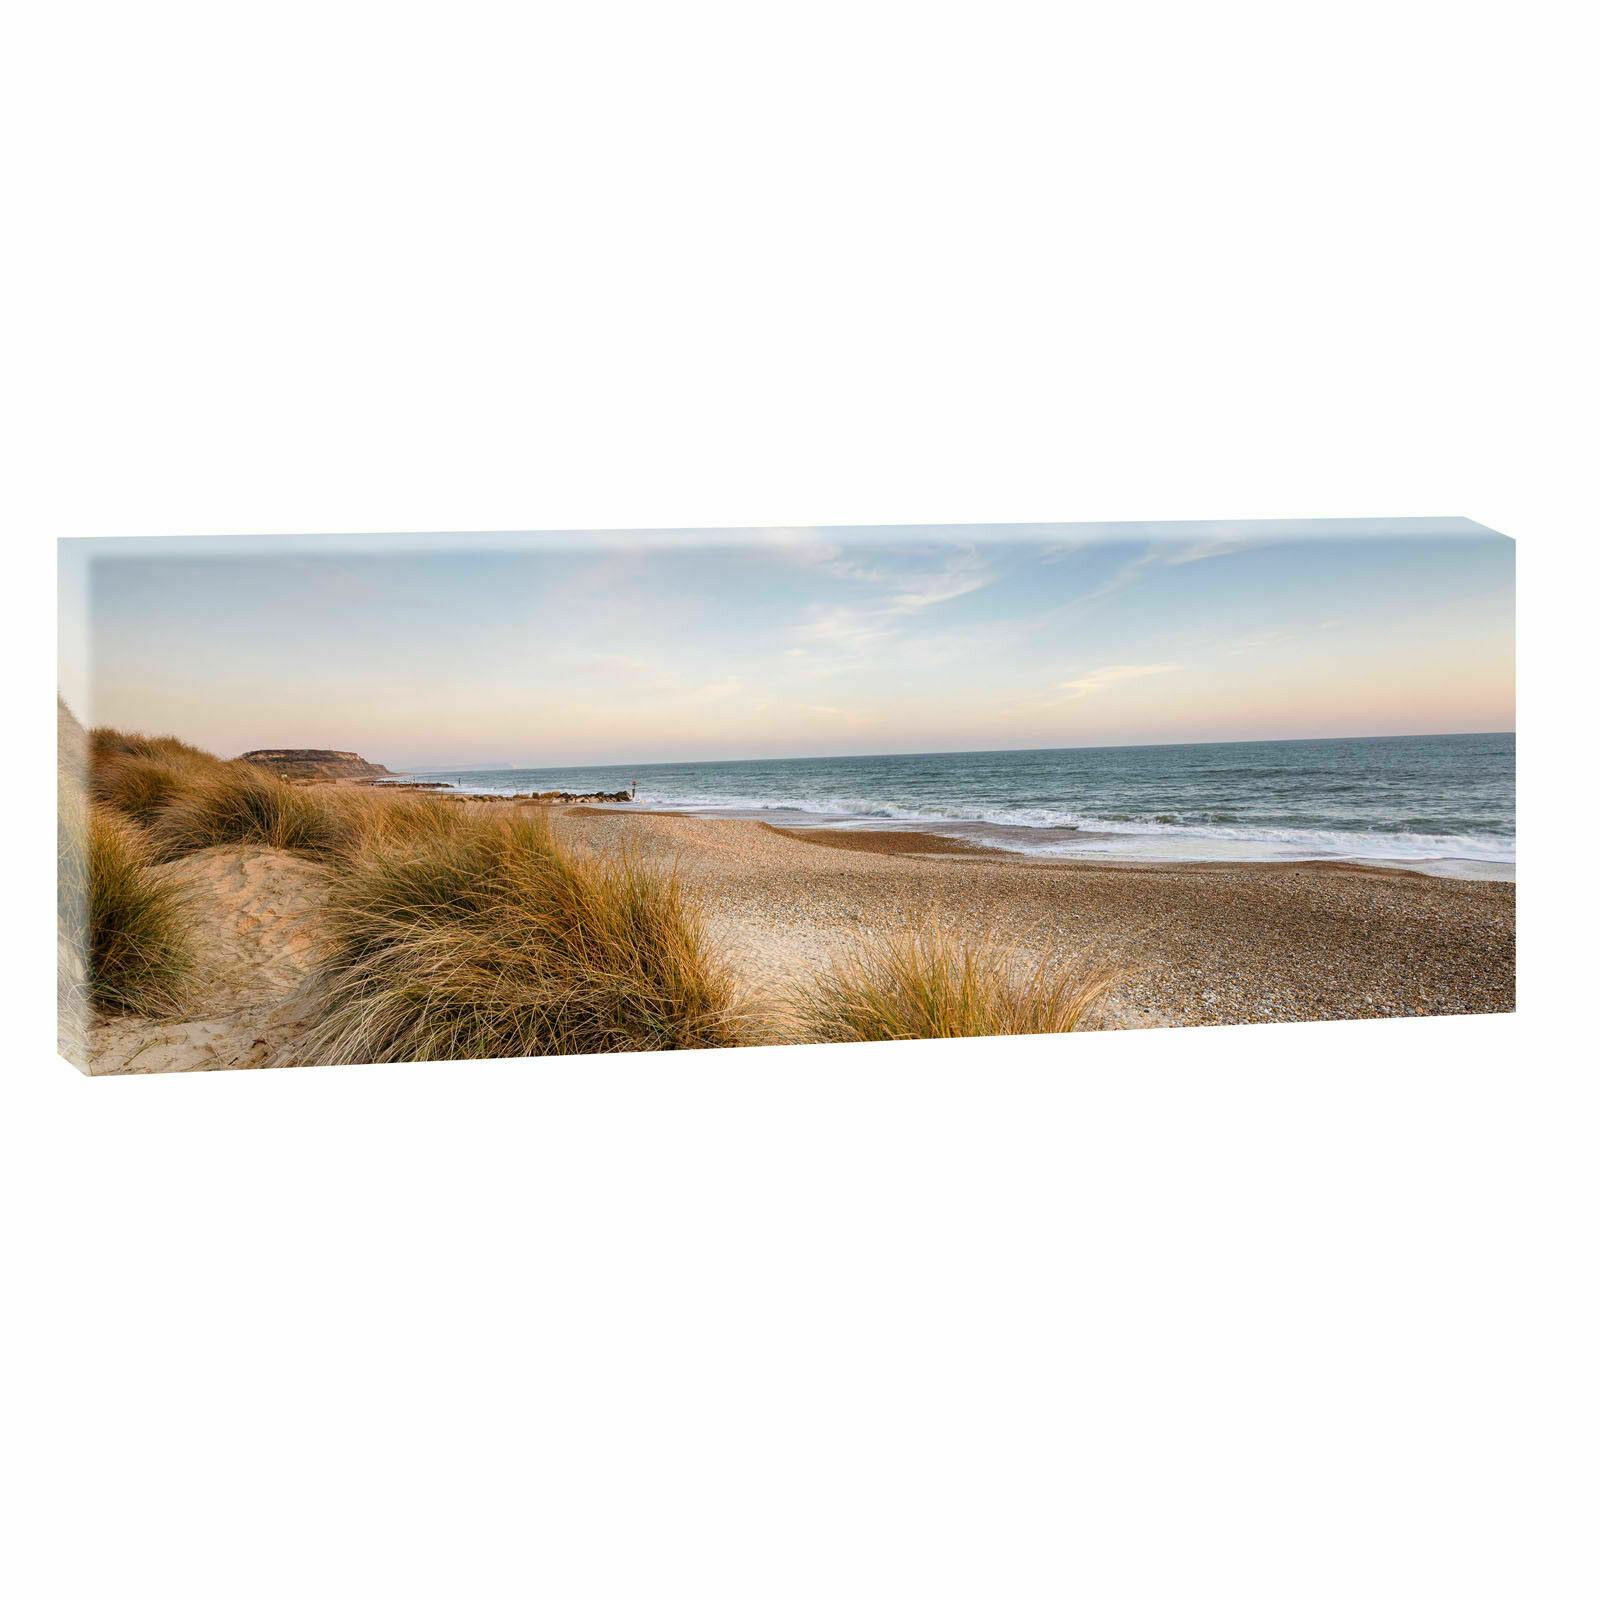 leinwand kunstdruck bilder wandbild panorama landschaft nordsee strand meer 613 eur 20 00. Black Bedroom Furniture Sets. Home Design Ideas